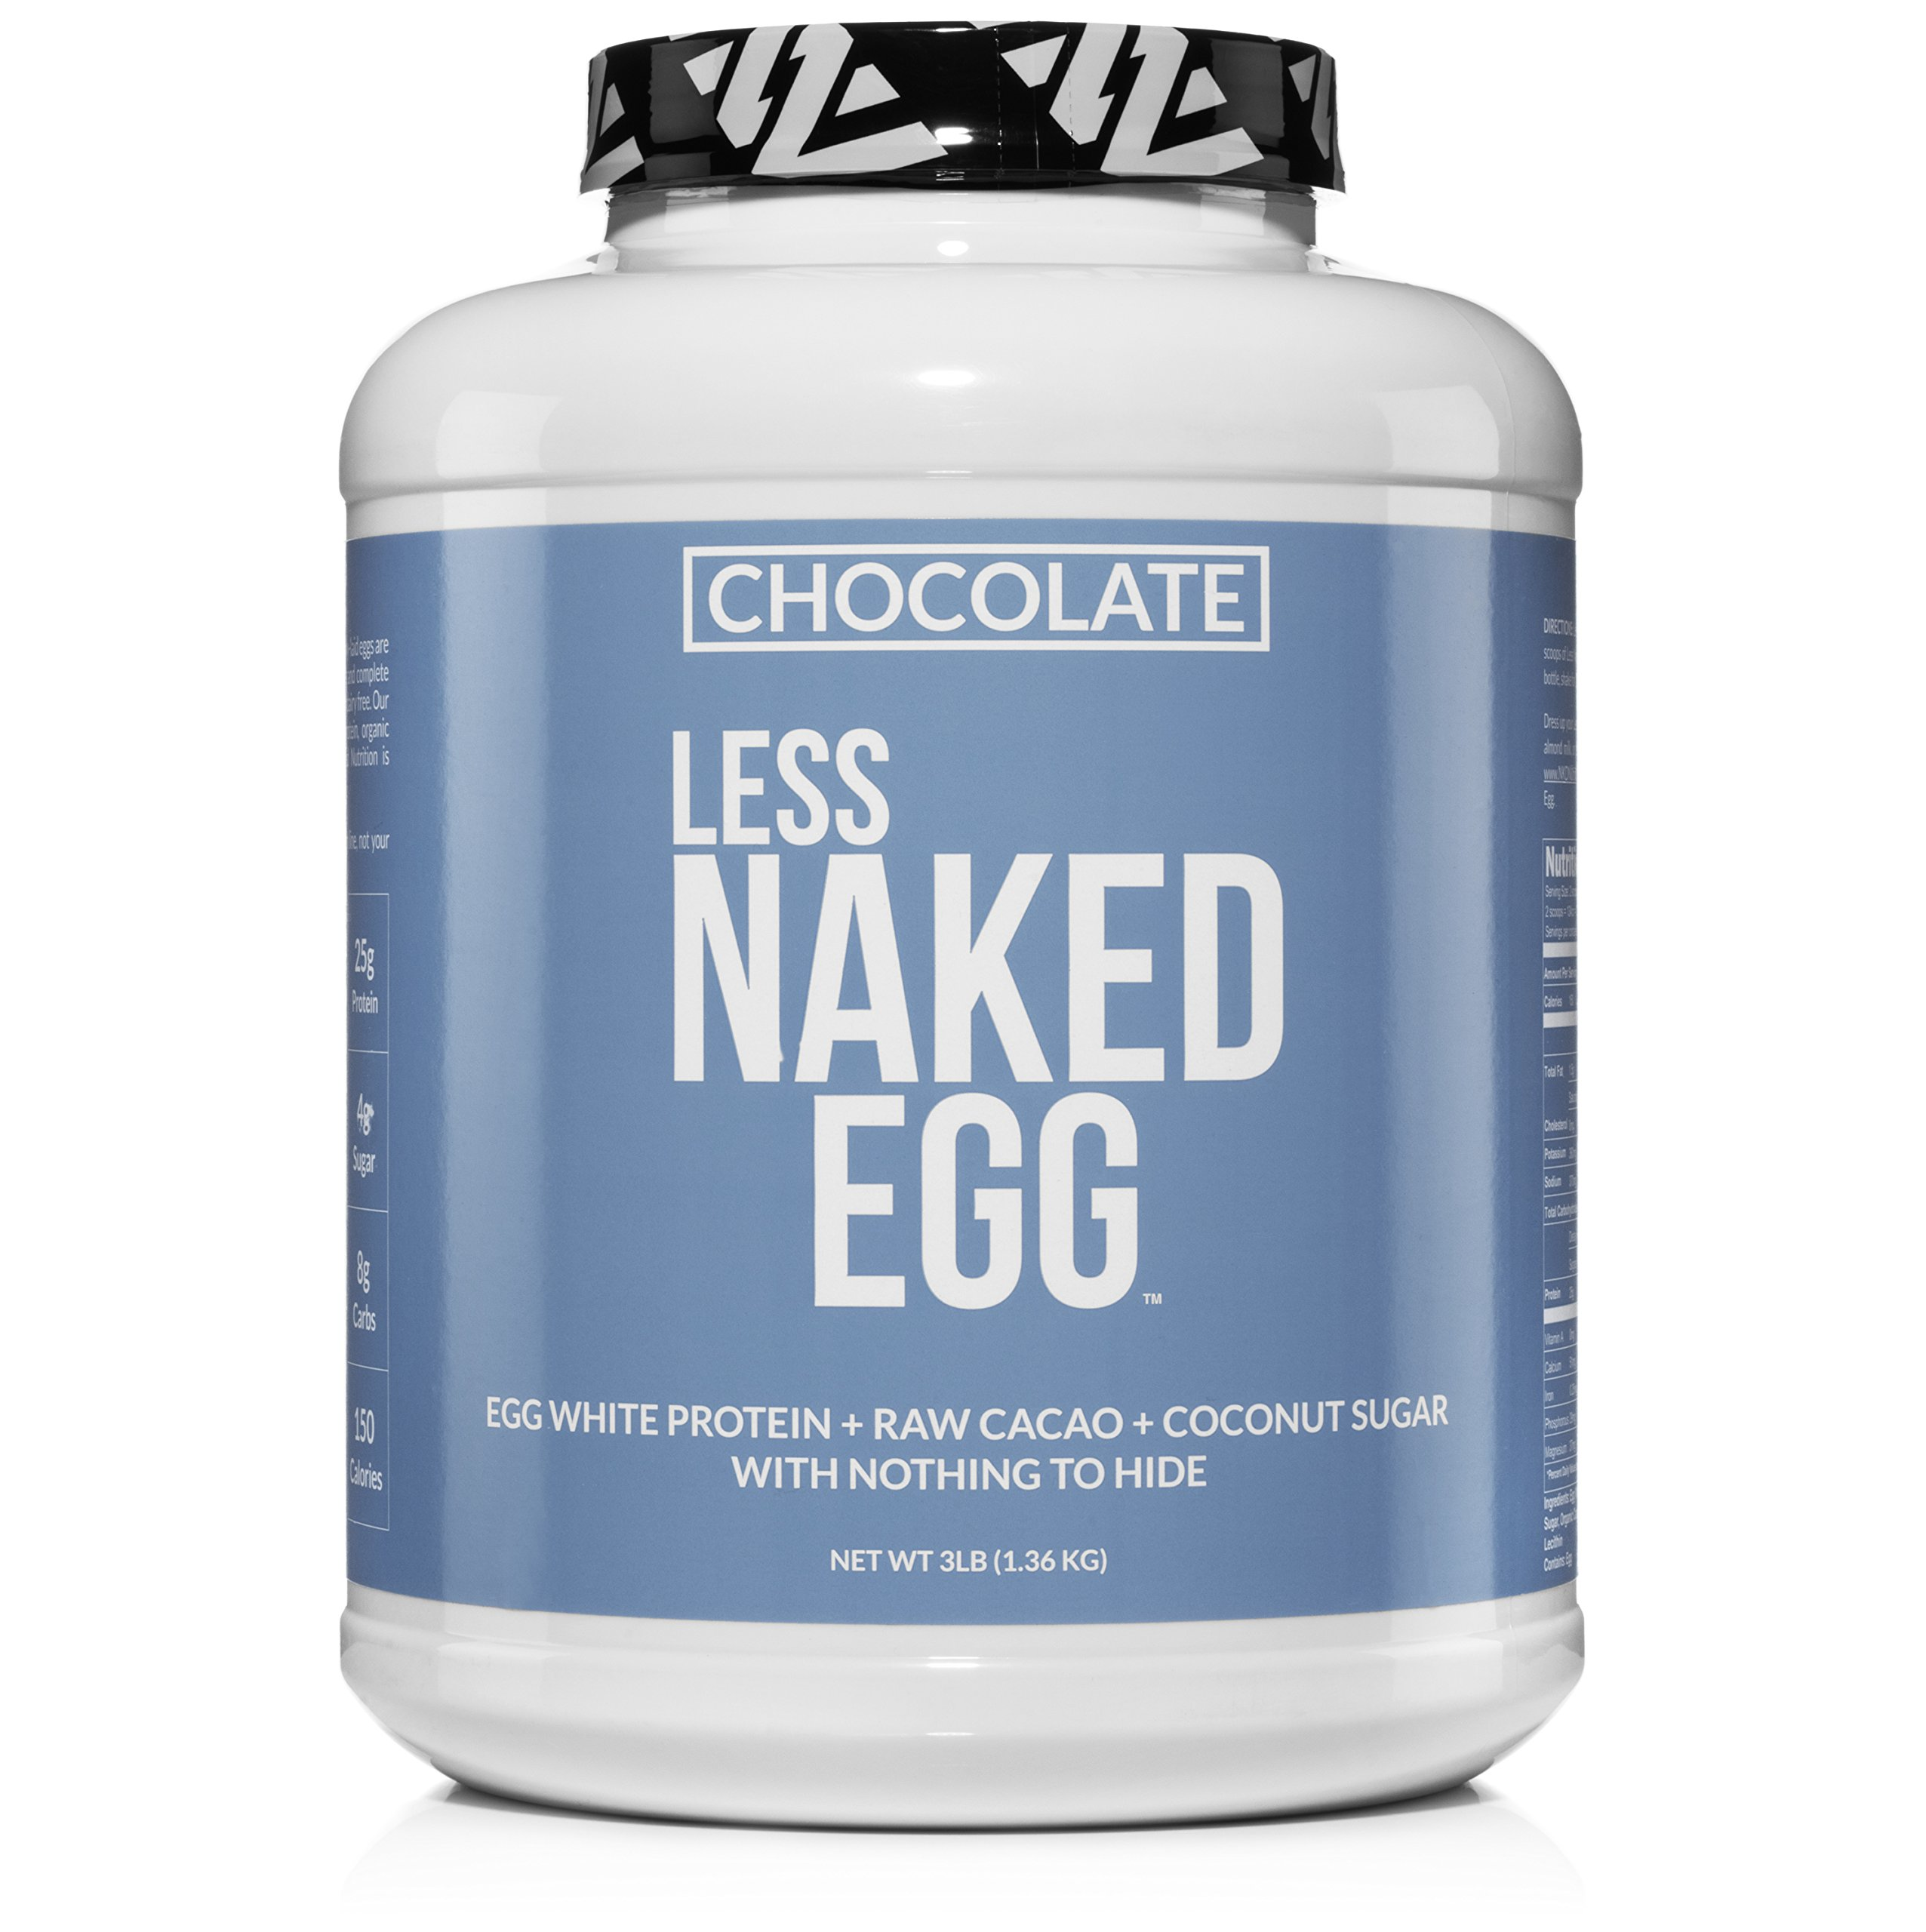 CHOCOLATE LESS NAKED EGG - Non-GMO Egg White Protein Powder from US Farms - 3lb Bulk, No Additives, Paleo, Dairy Free, Gluten Free, Soy Free - 25g Protein, 36 Servings by NAKED nutrition